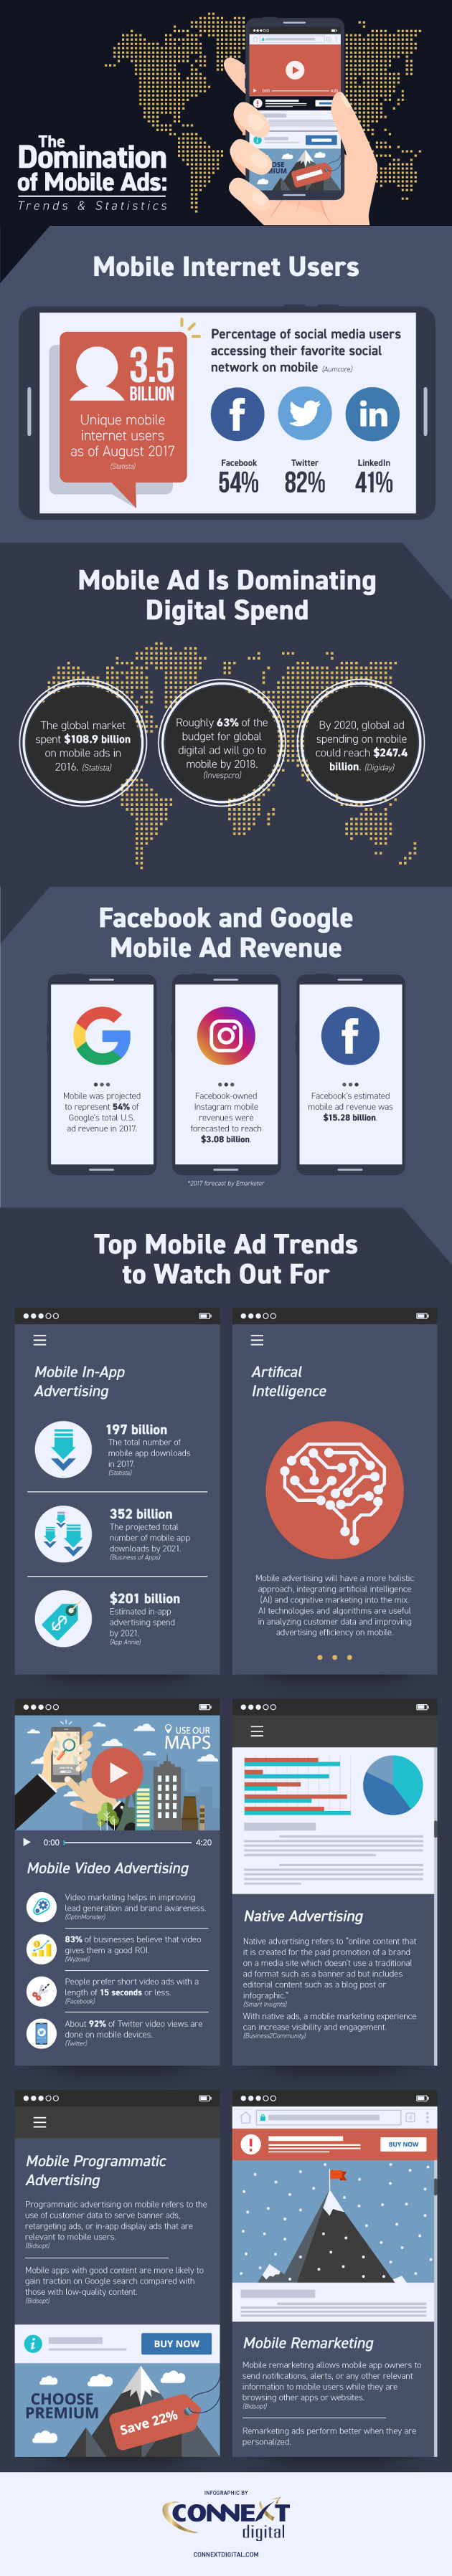 Mobile Advertising Global Trends and Statistics | Infographic